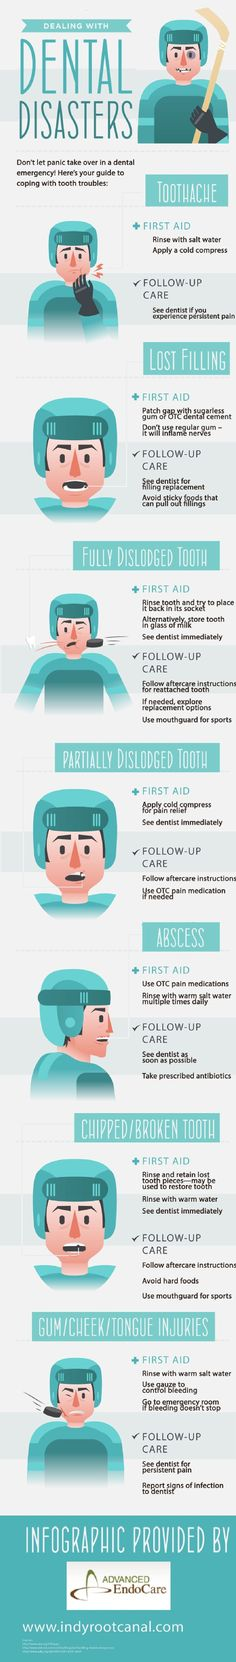 When a patient has a partially dislodged tooth, a cold compress can help to ease the pain until he or she can get in to see the dentist. Check out this infographic from Advanced EndoCare in Indianapolis to learn more about dental emergencies.